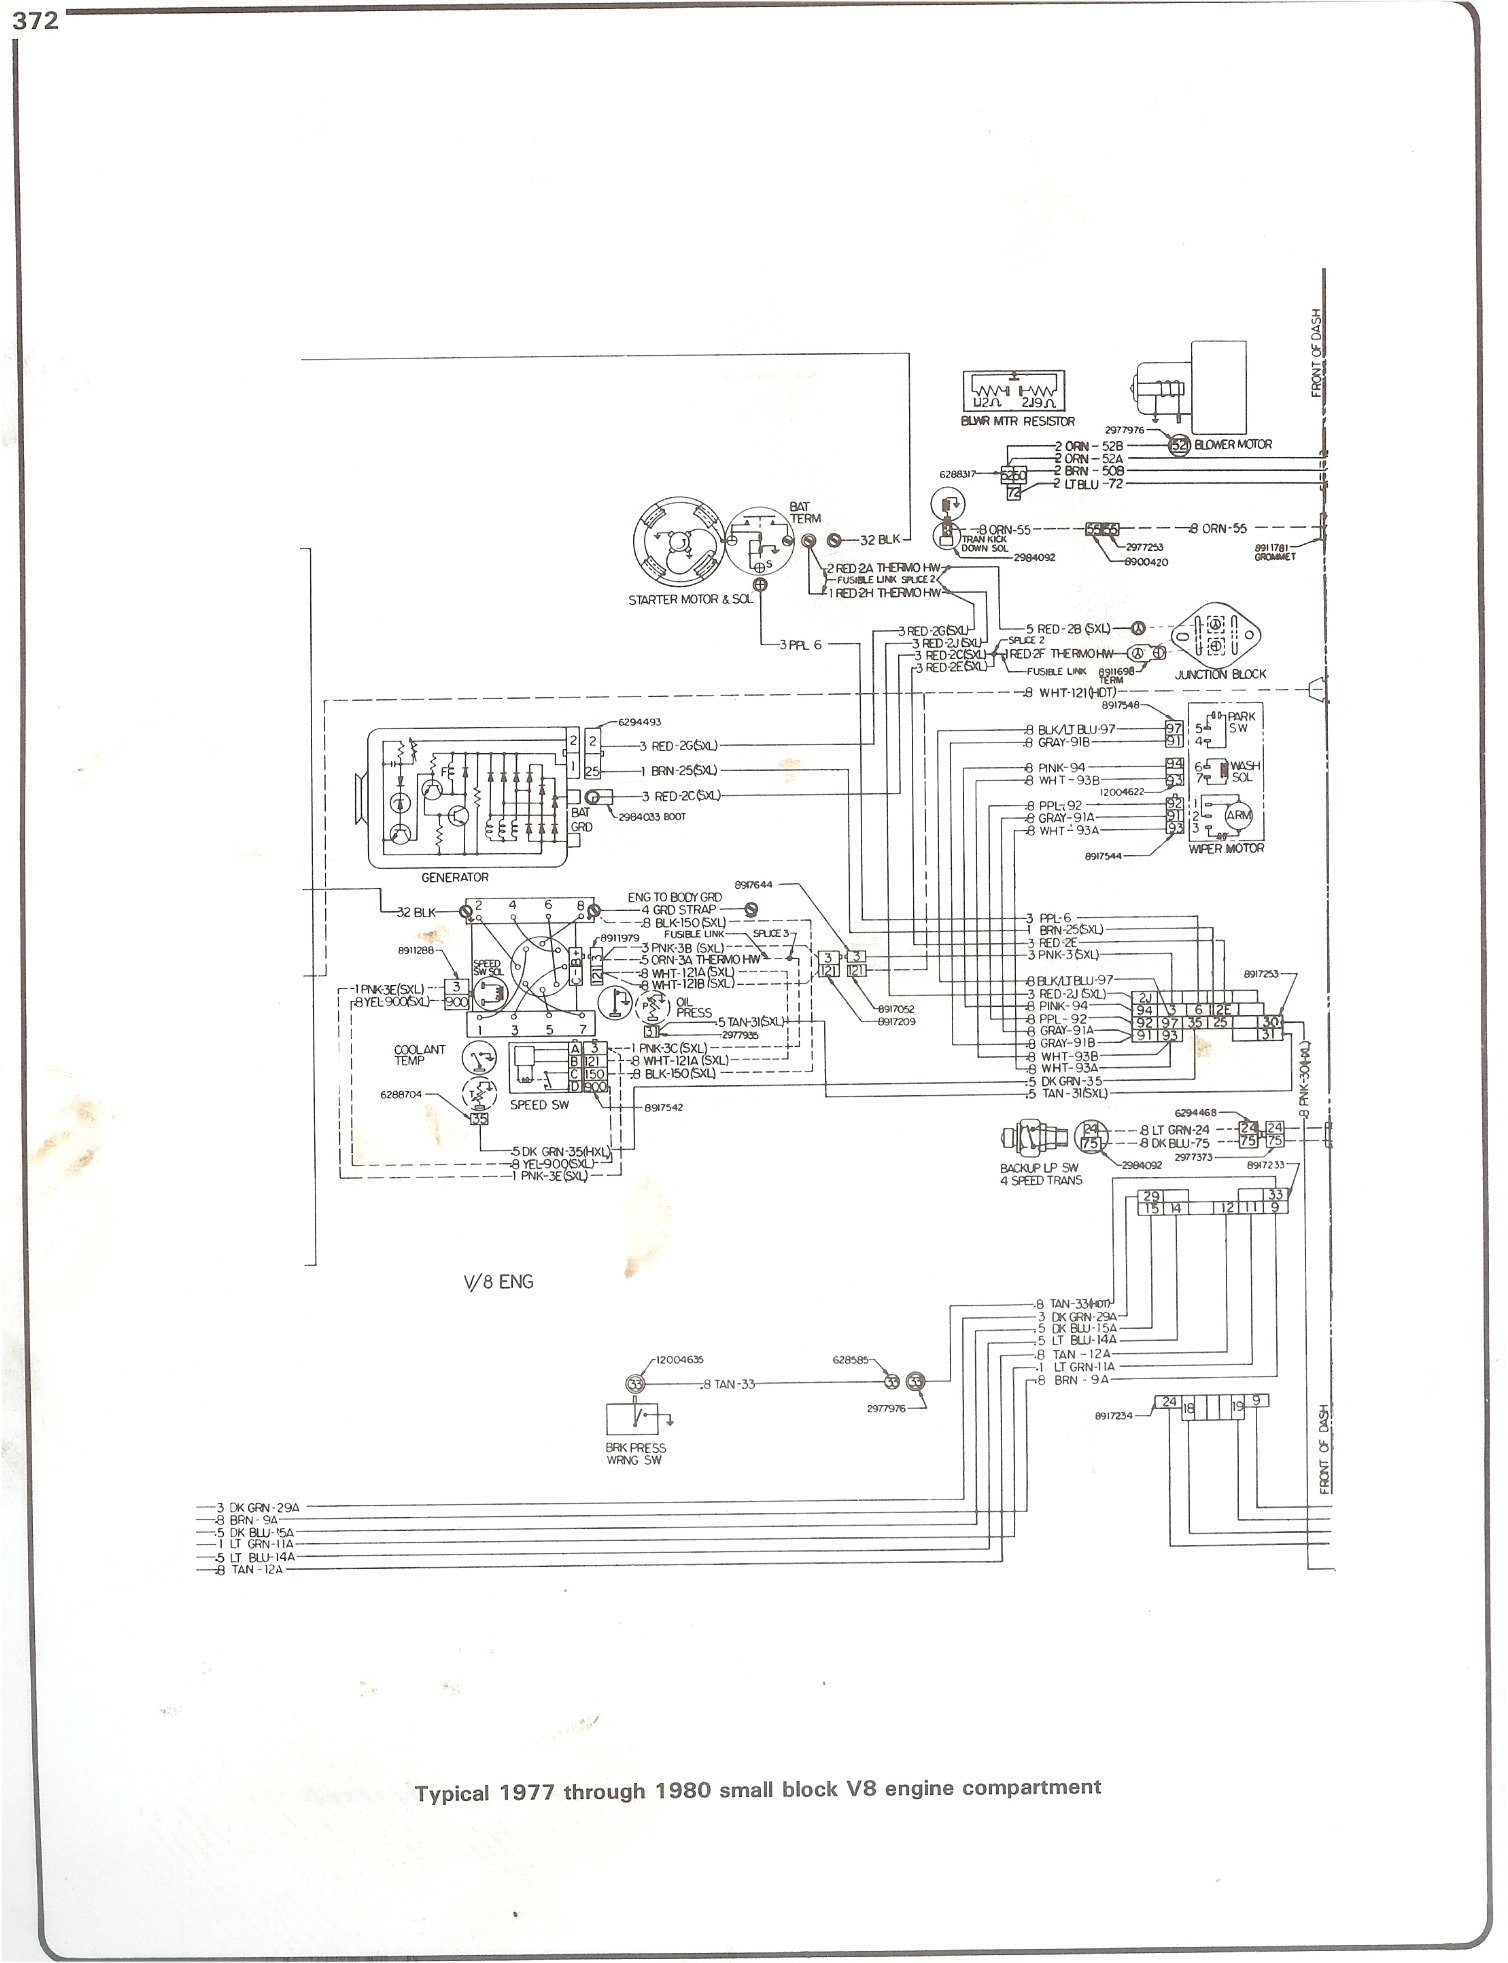 1975 dodge truck wiring diagrams